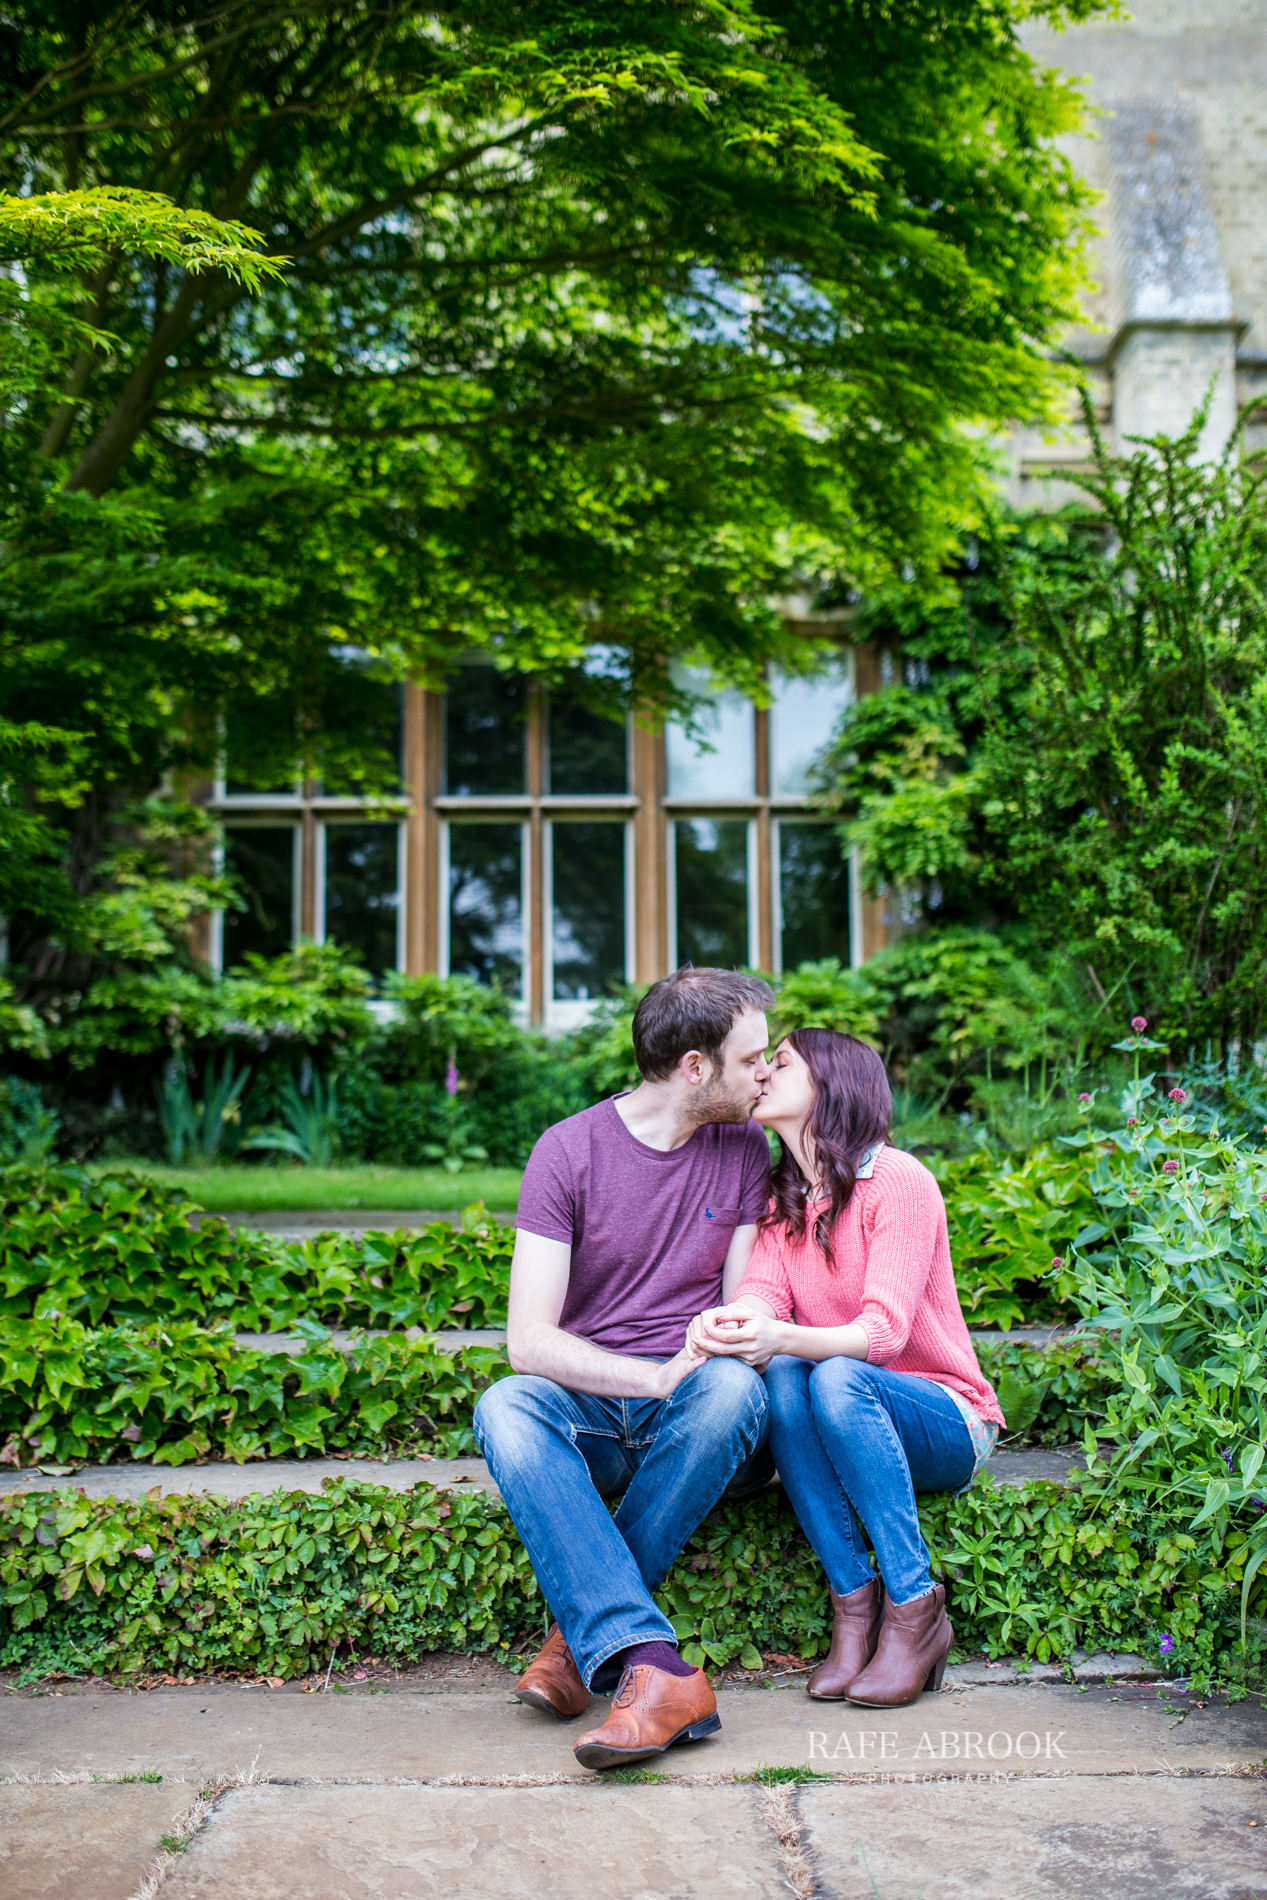 nicola & andy engagement shoot rspb the lodge sandy bedfordshire-5023.jpg